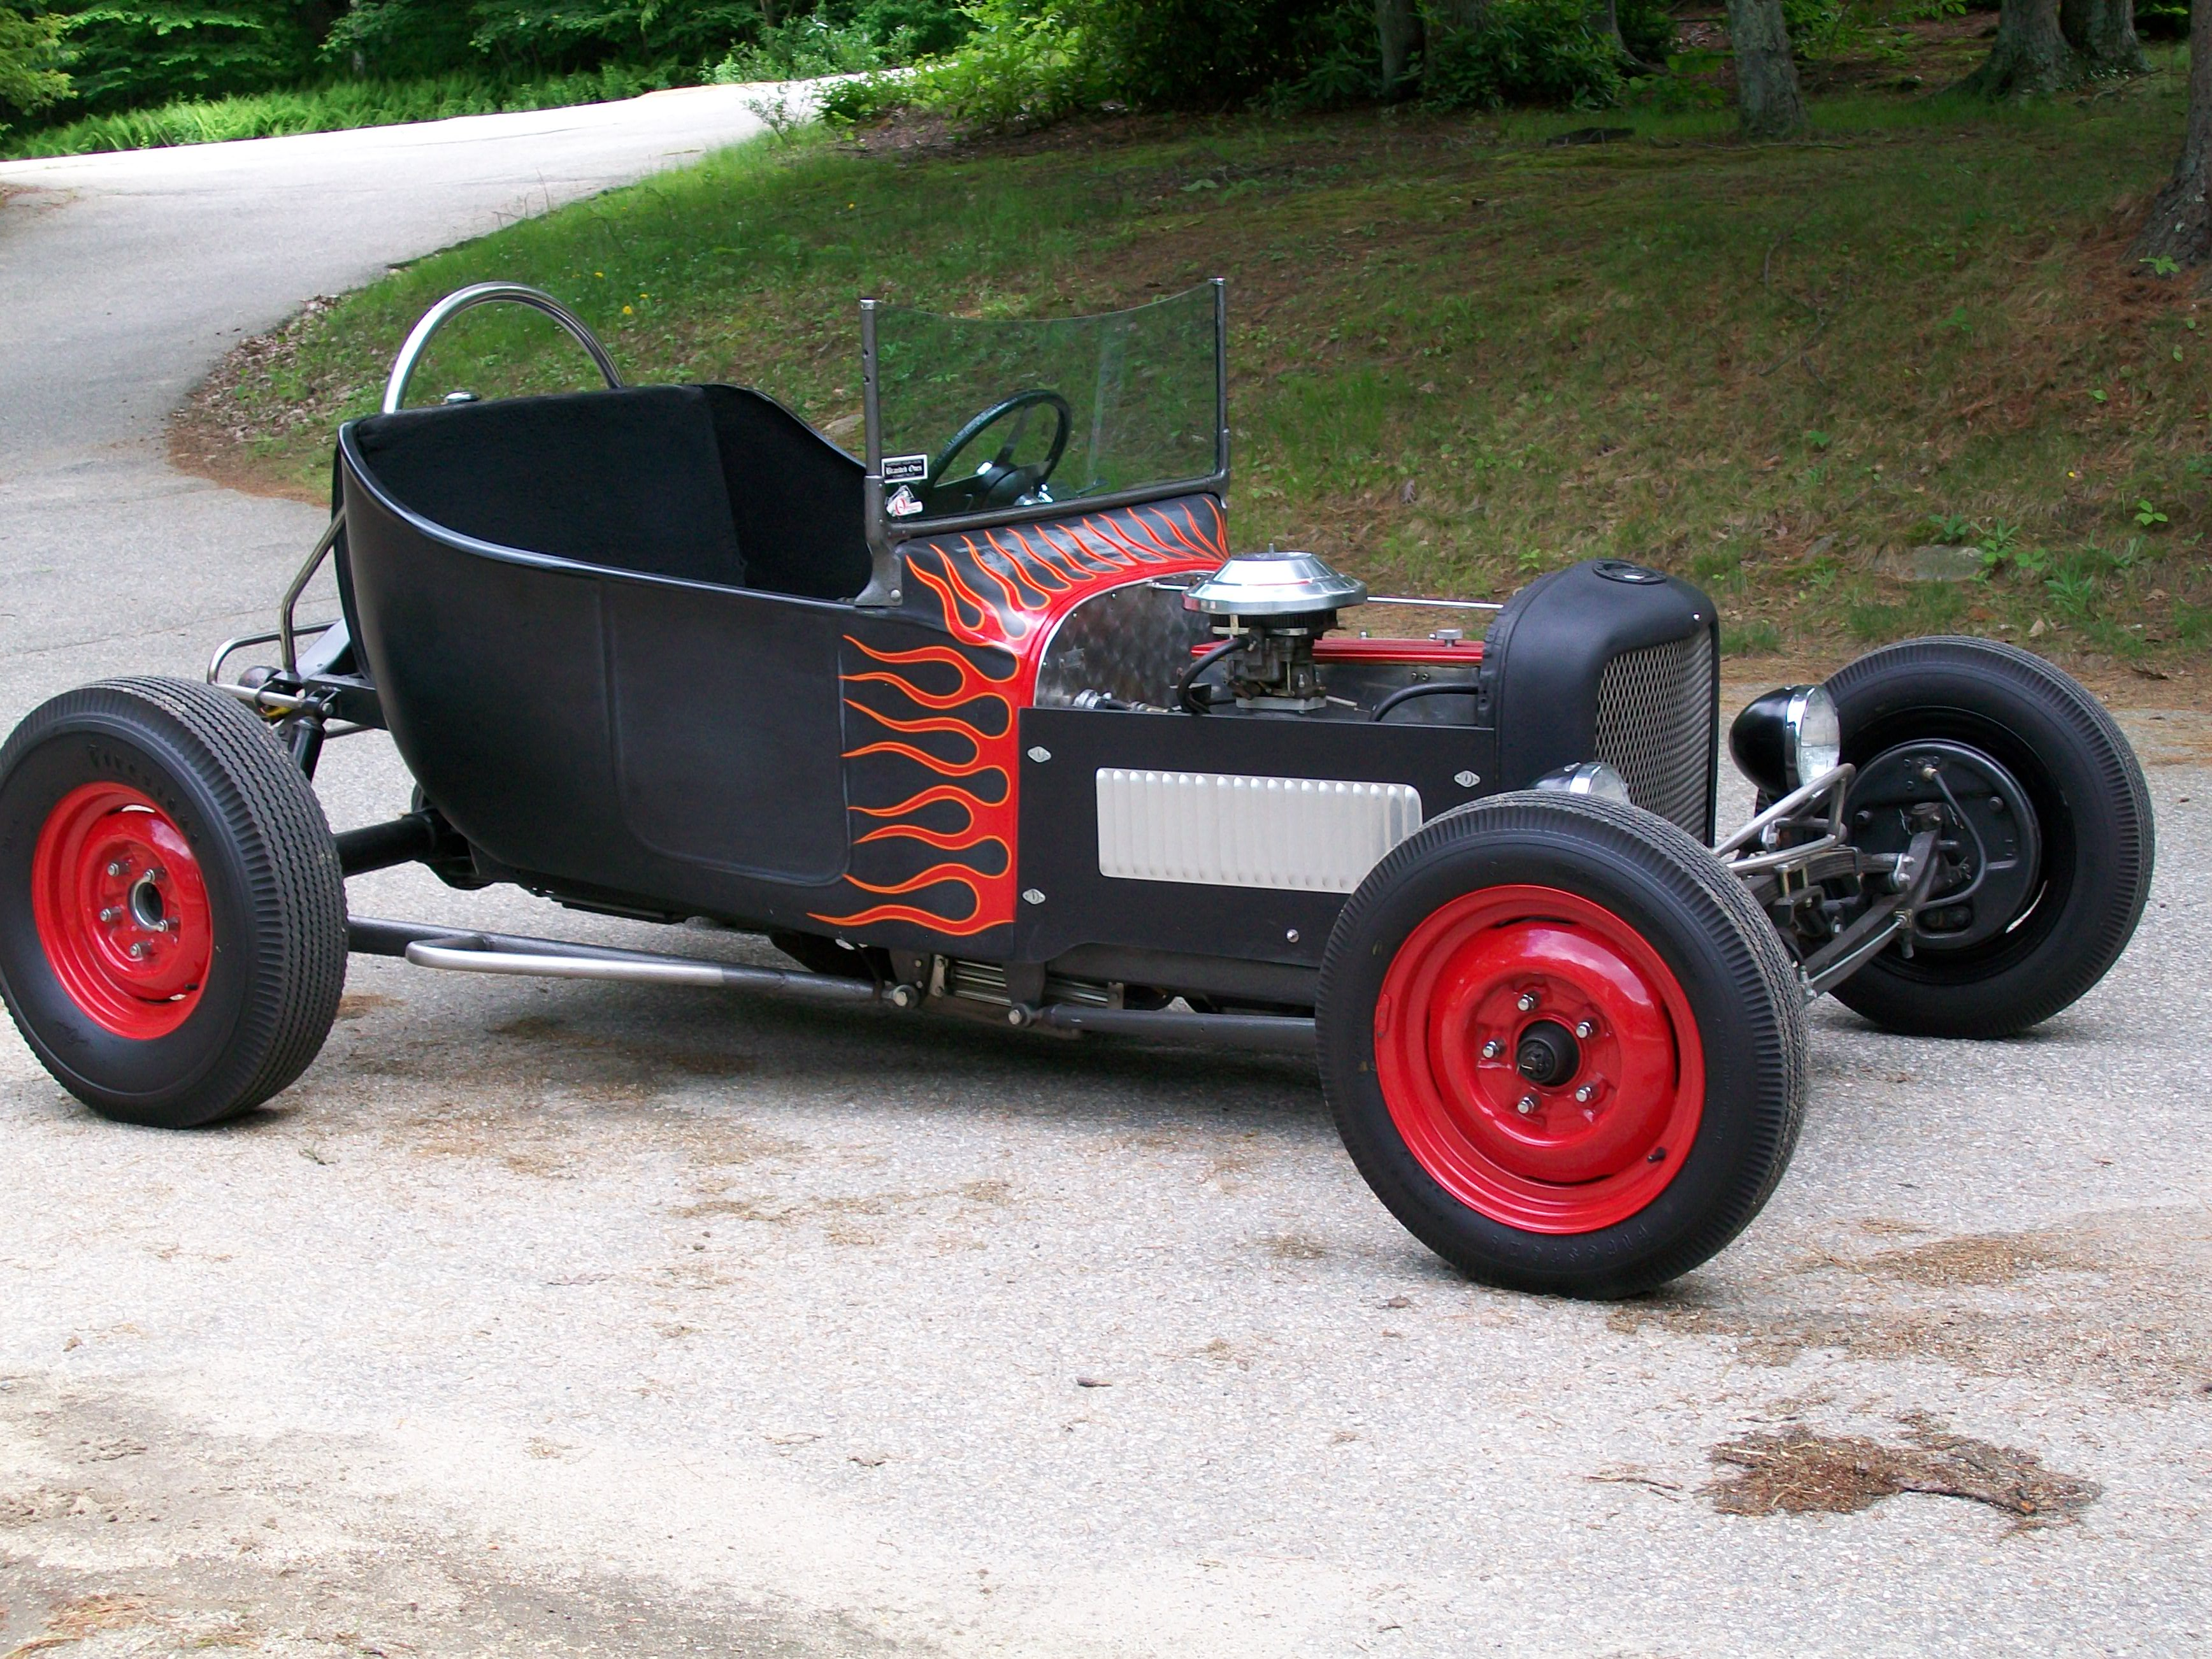 1927 Ford Model T traditional Hot Rod | The H.A.M.B.